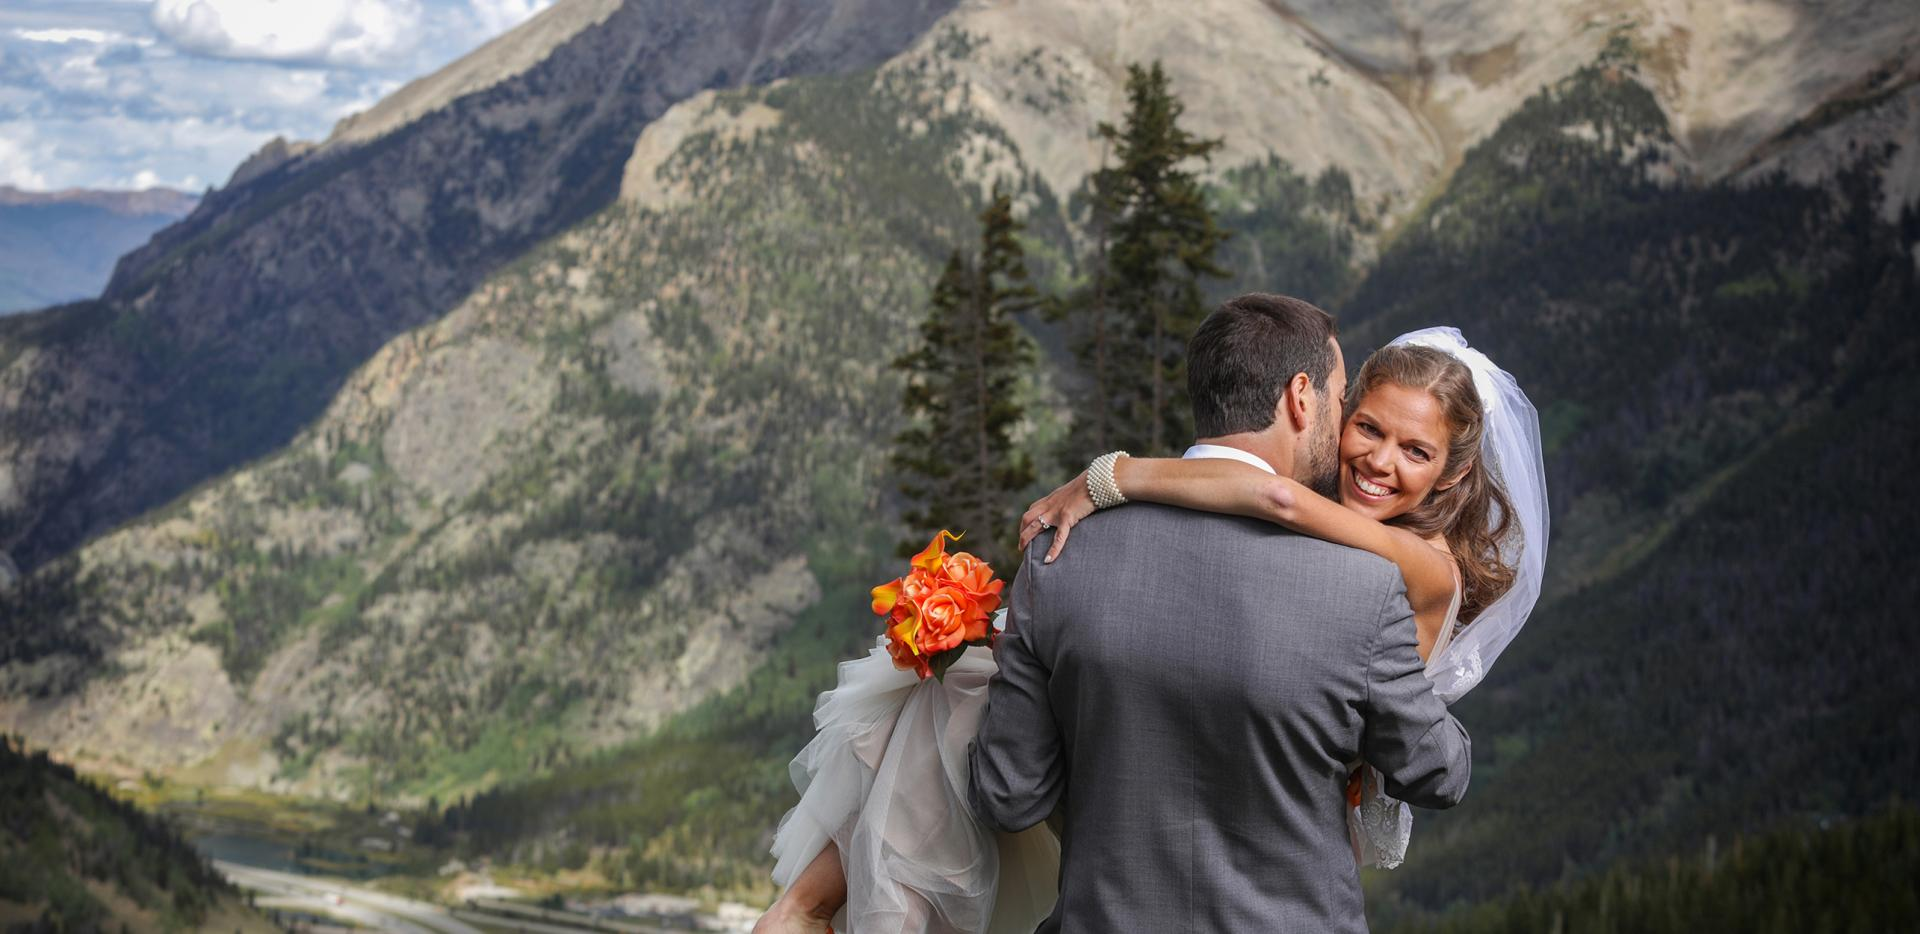 Weddings At Copper Mountain